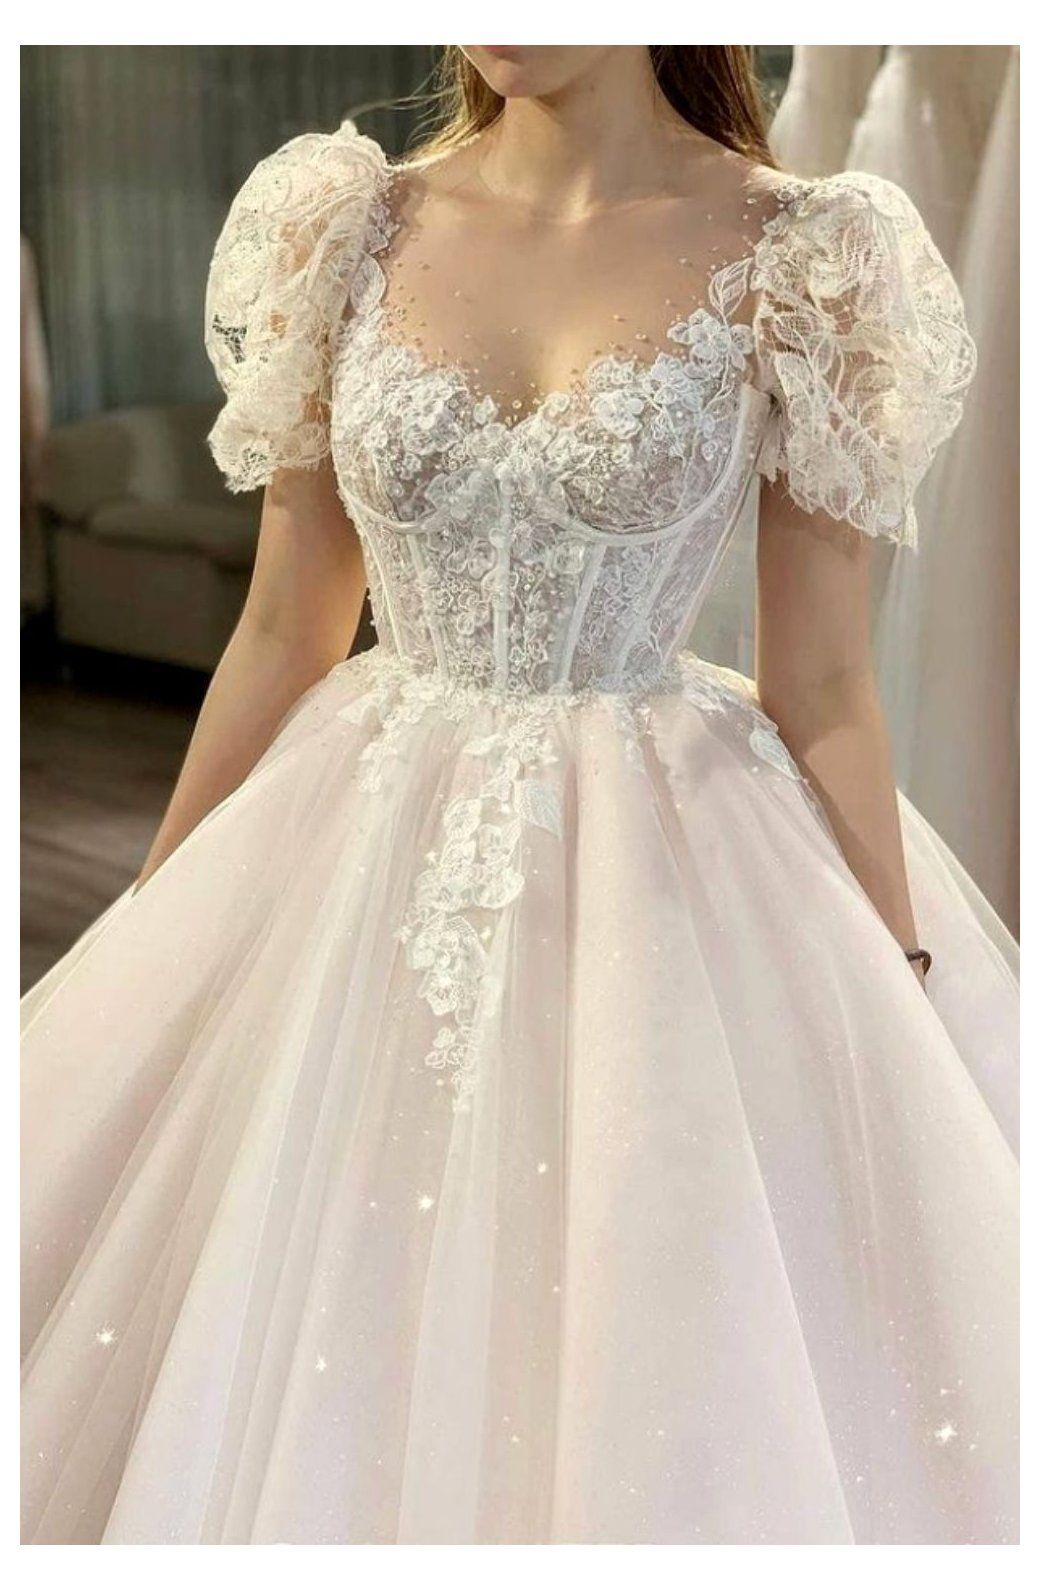 21 Princess Wedding Dress Ideas Trends 2021 You Need To Know Wedding Dresses Wedding Dresses Ball Gown Weddingdre In 2021 Pretty Dresses Ethereal Dress Gowns